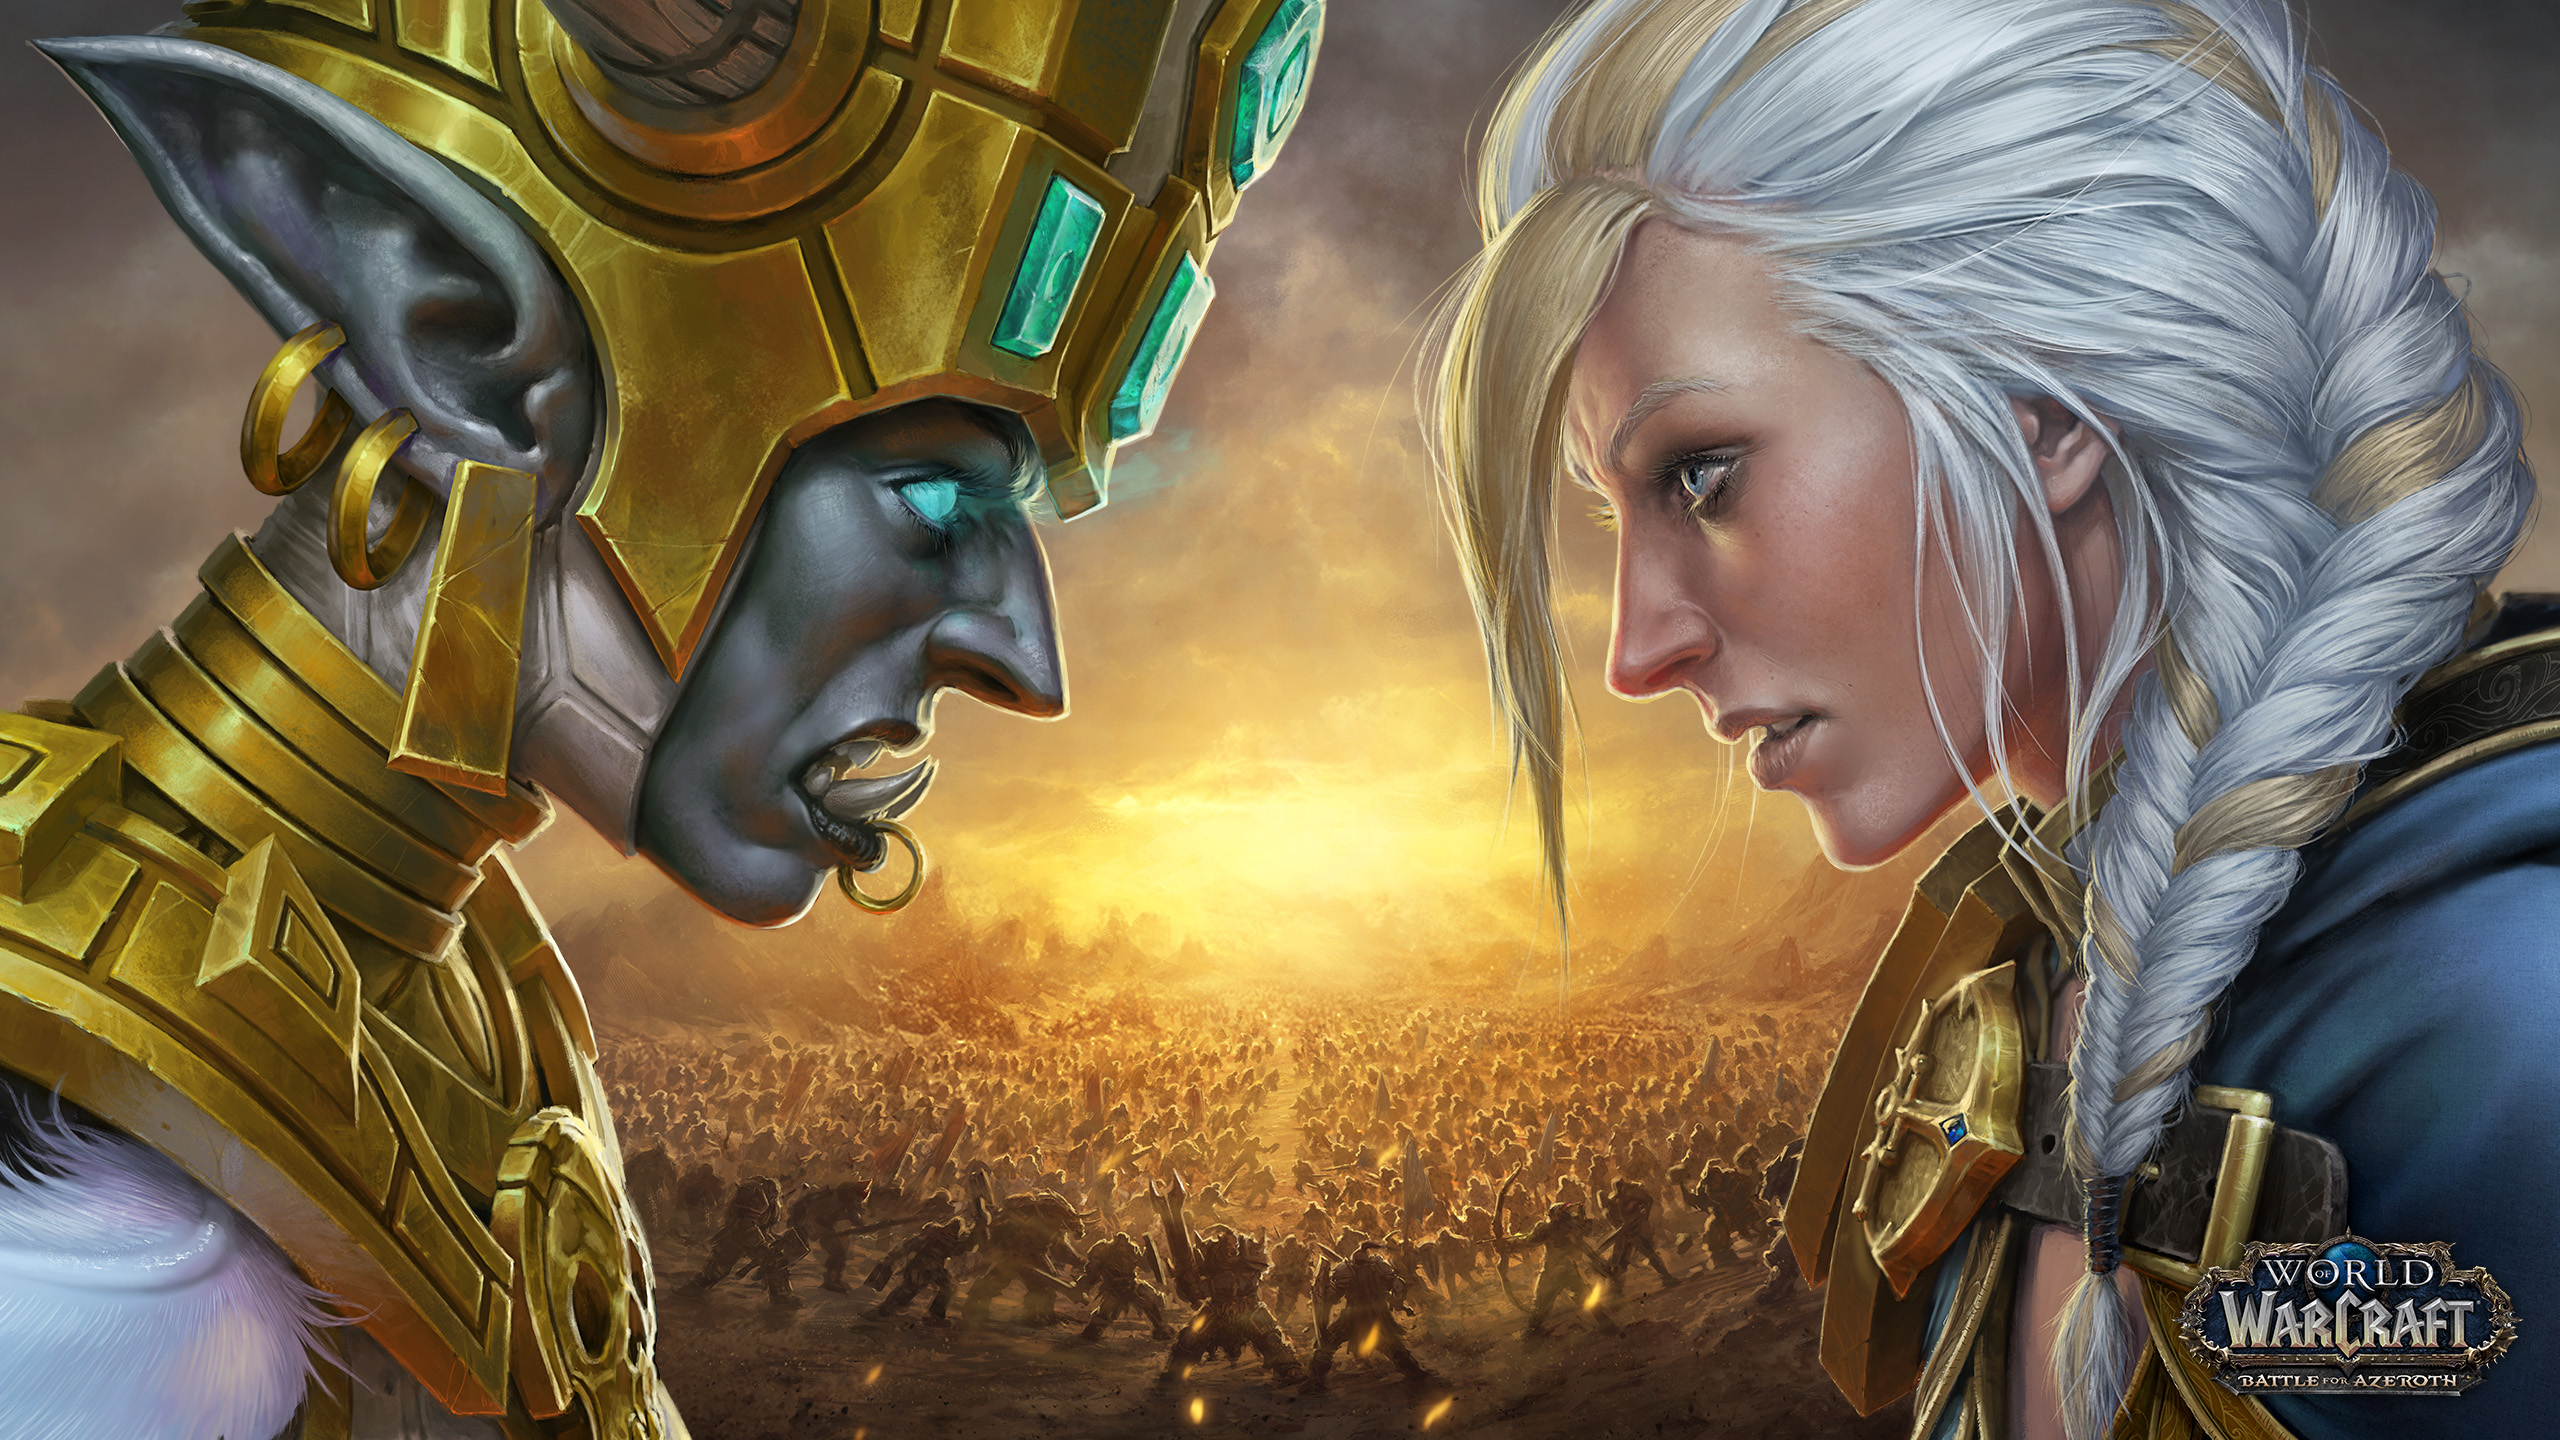 World Of Warcraft May Be Seeing A Decline As Blizzard Announces Another Consolidation Of Servers